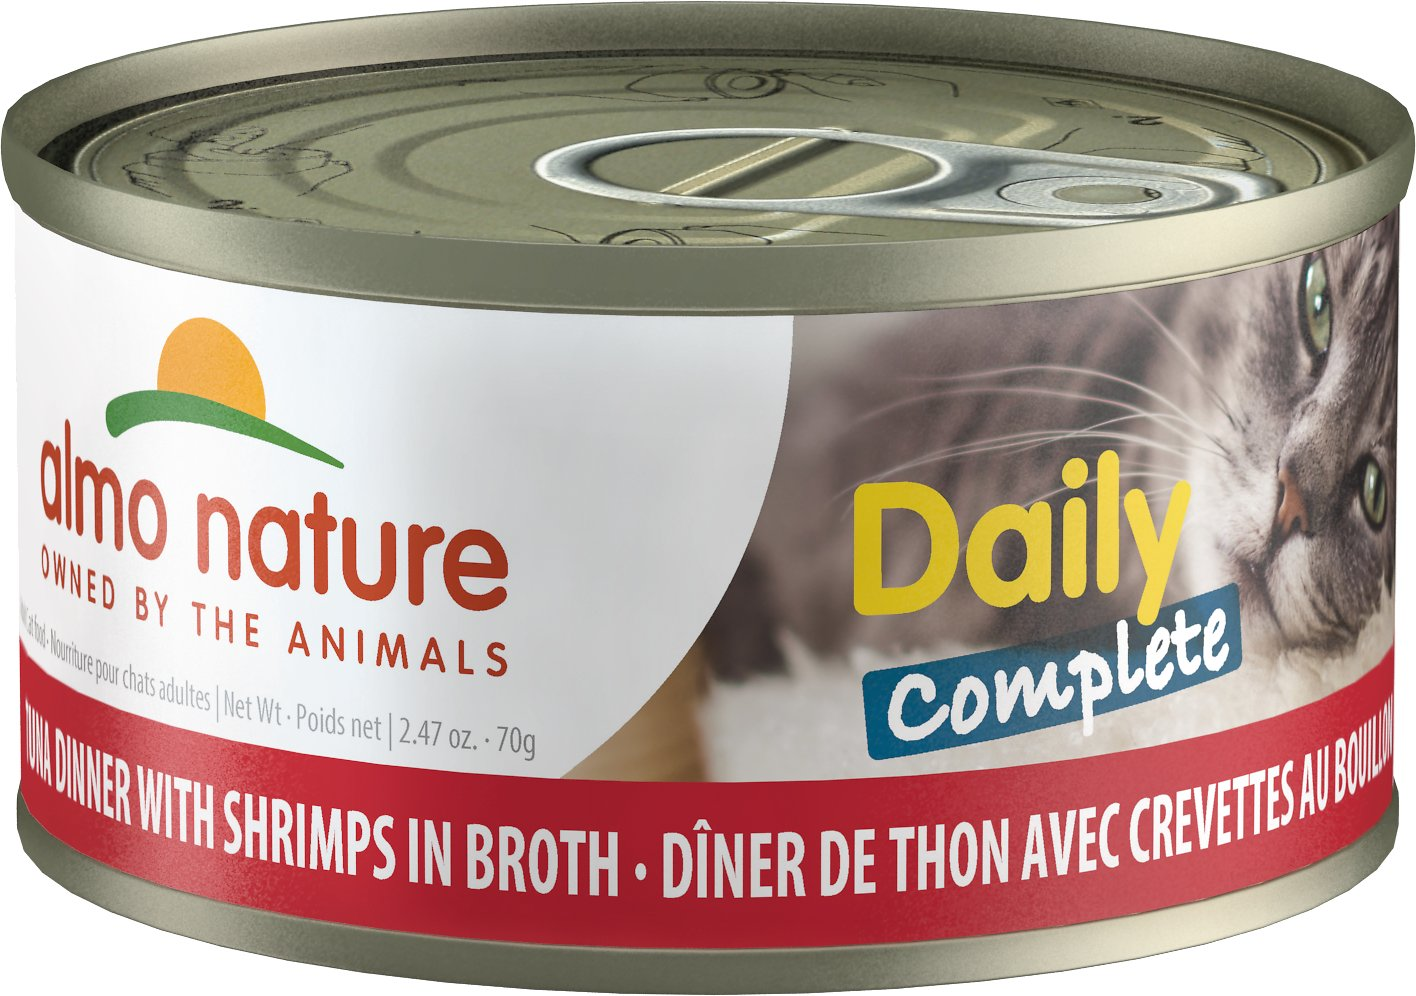 Almo Nature Daily Complete Tuna Dinner with Shrimps in Broth Grain-Free Wet Cat Food, 2.47-oz